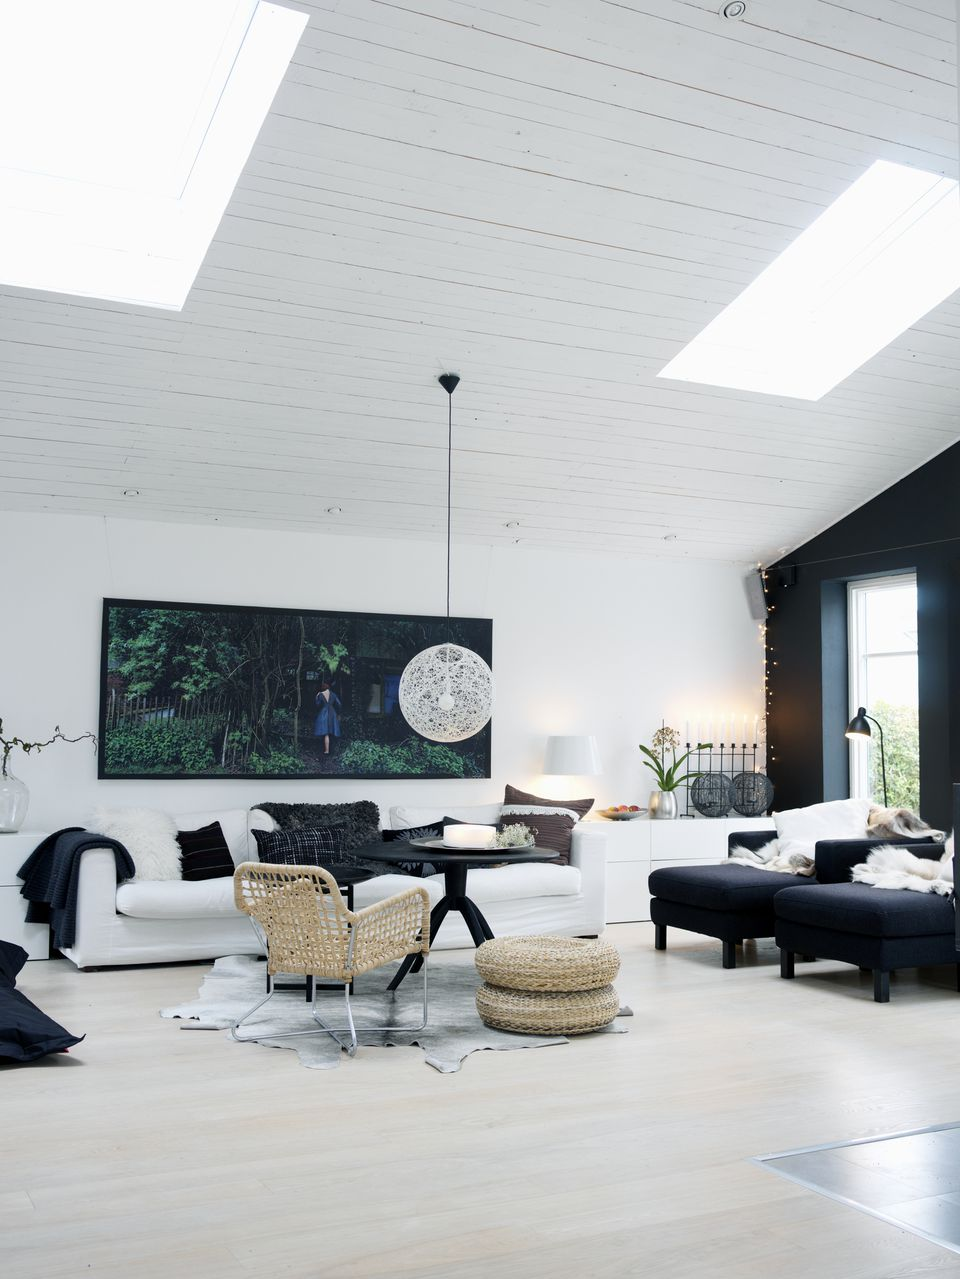 Decorate Your House With the Color Black for Good Feng Shui